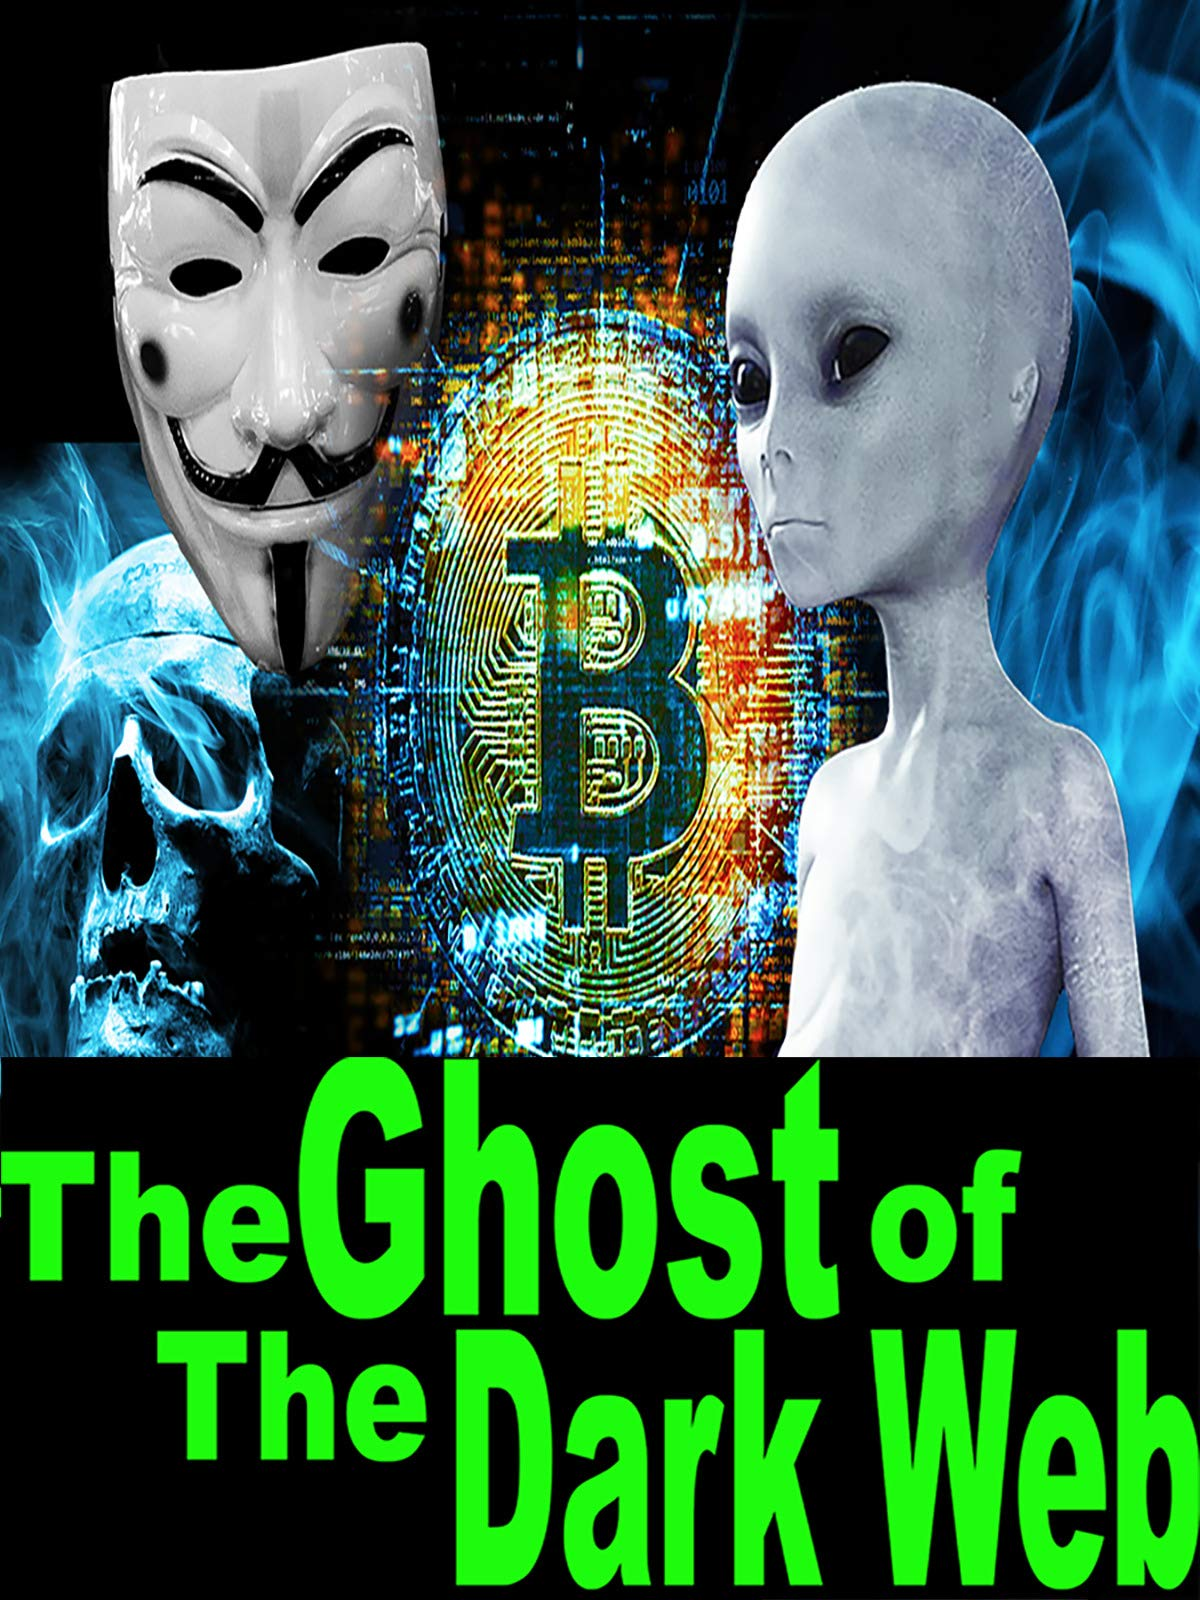 The Ghost of The Dark Web